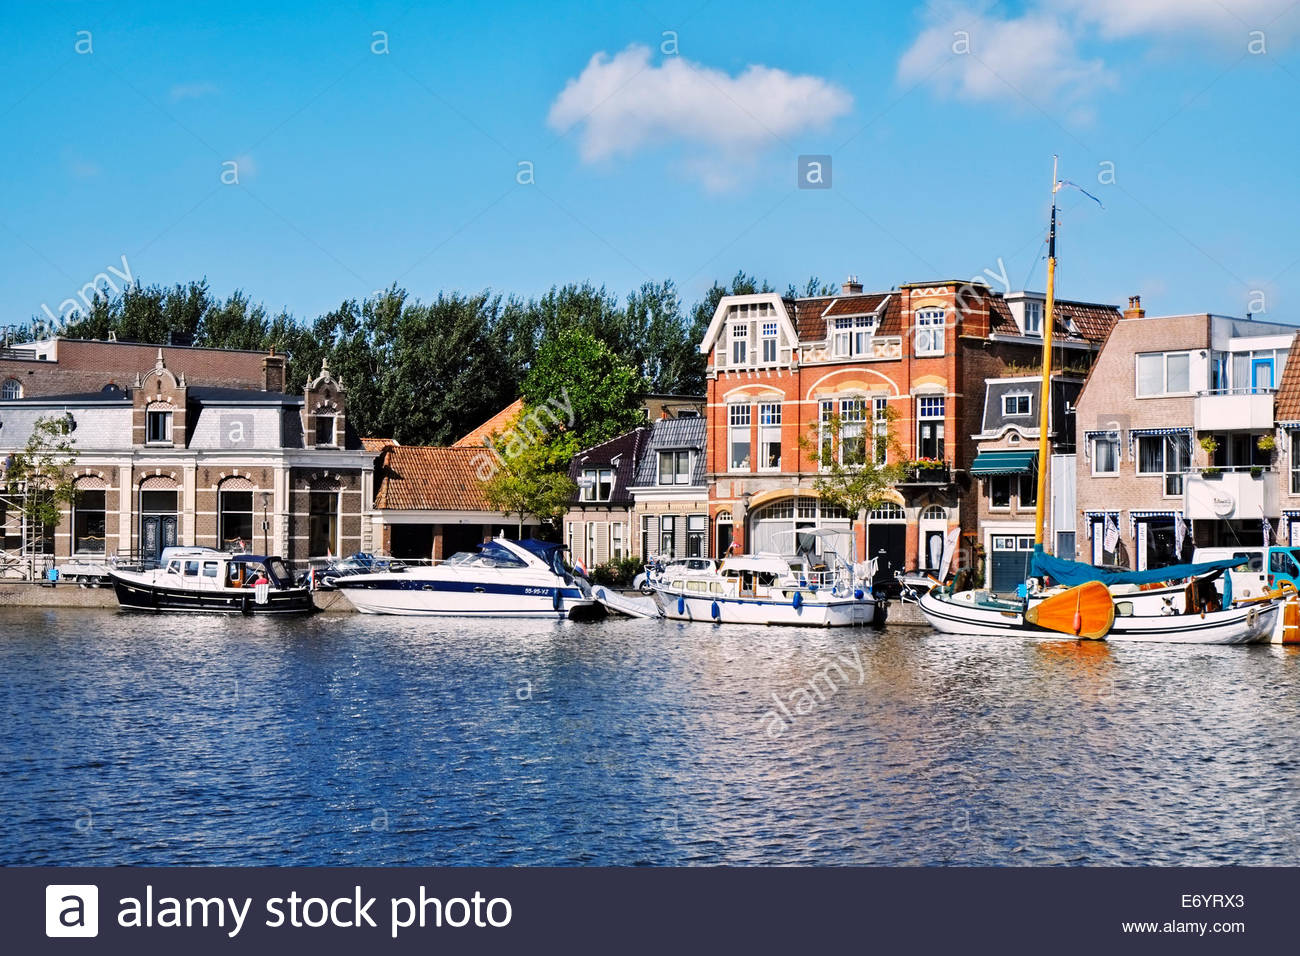 Houses and offices line the Geeuwkade leading to the Wonderbrug, with a variety of personal watercraft afloat in - Stock Image